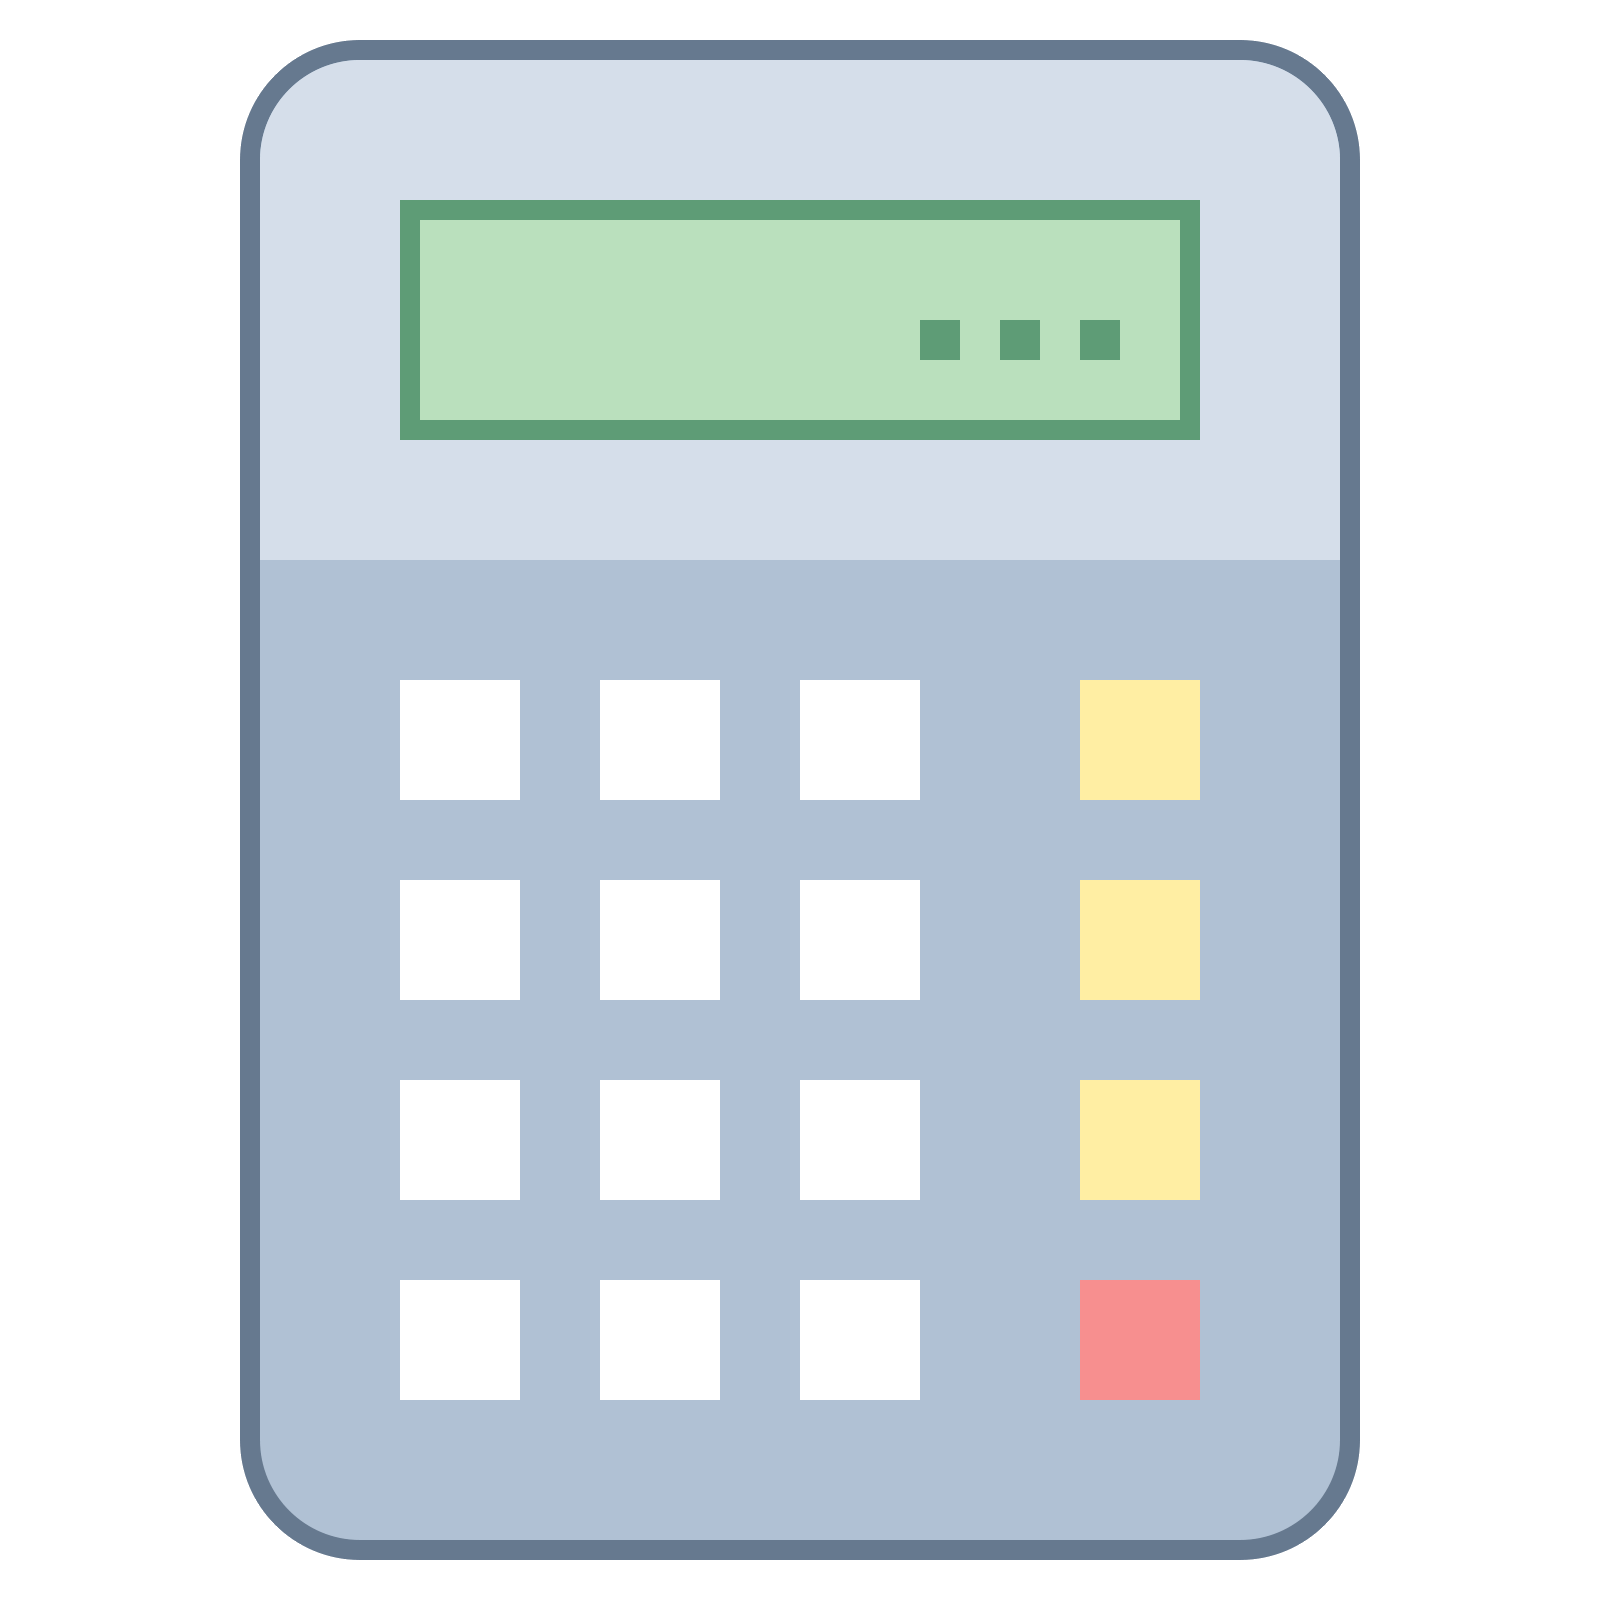 jpg black and white Calculator icon free download. Vector calculation tax